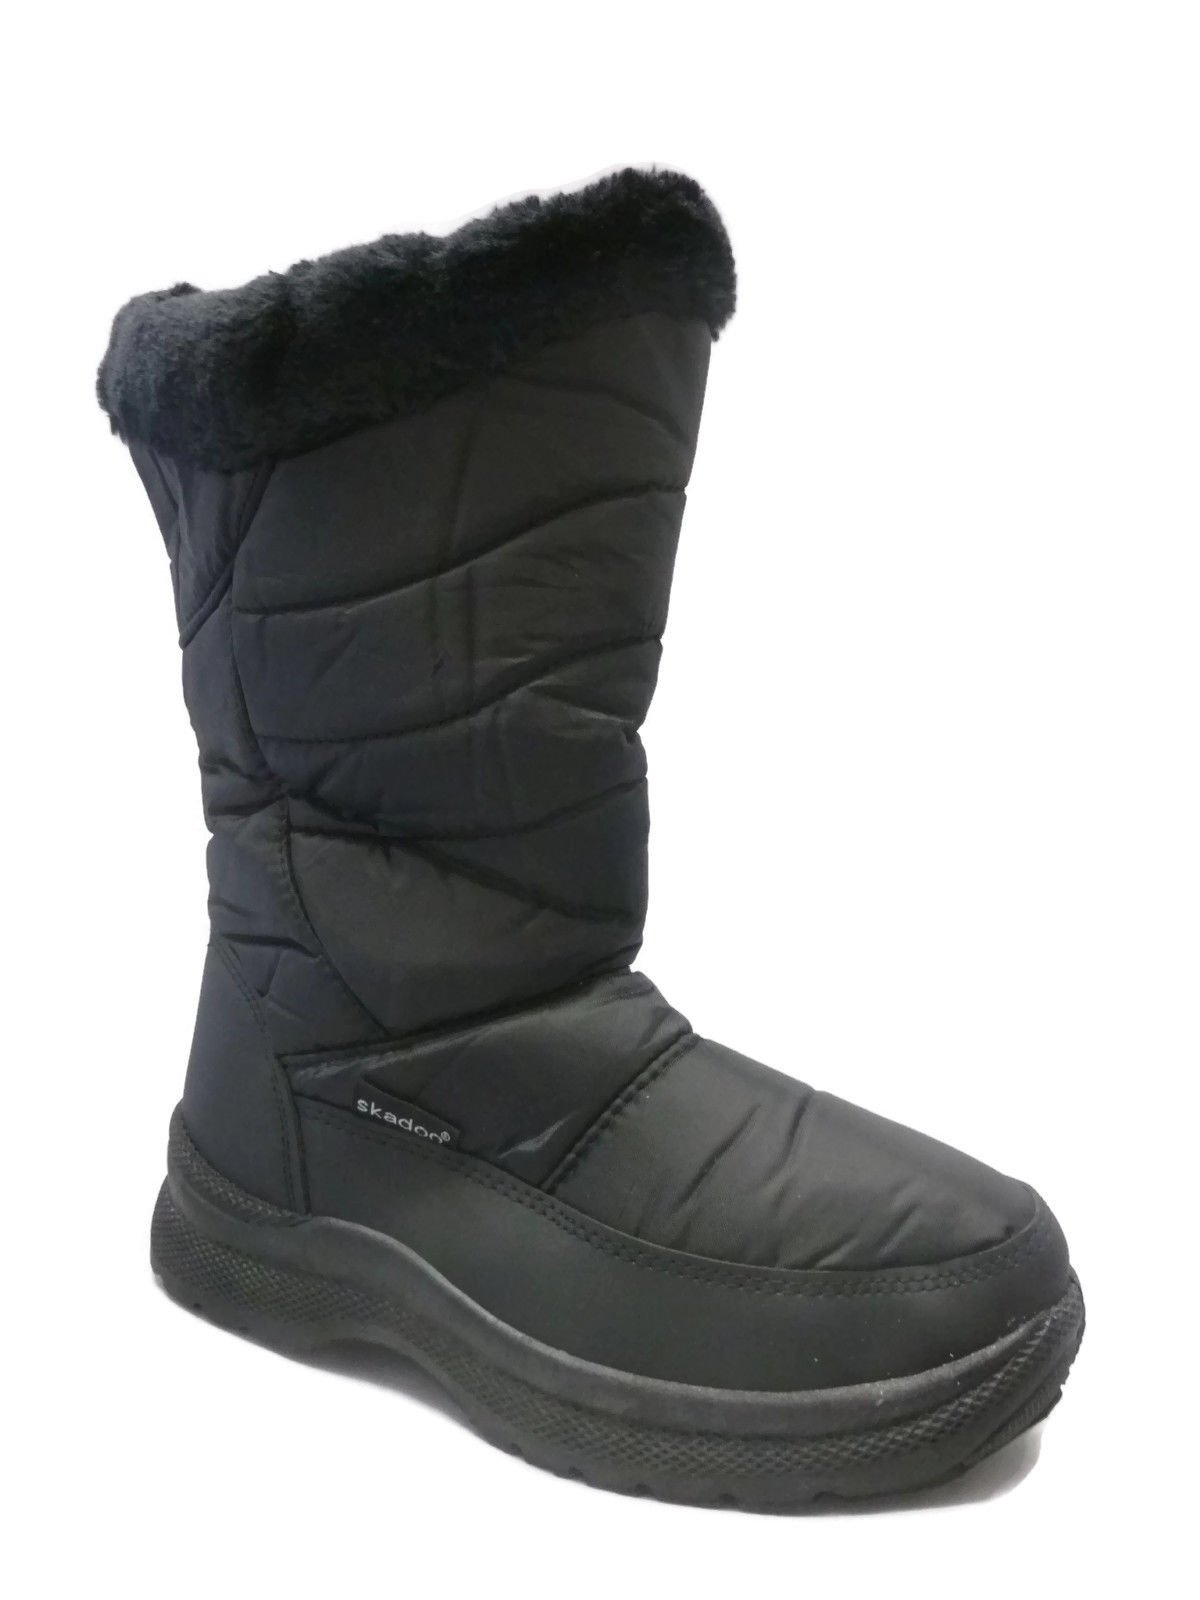 Ladies Black Snow Boots- SKADOO Winter Boots Sizes 5-11 Waterproof and Stylish!